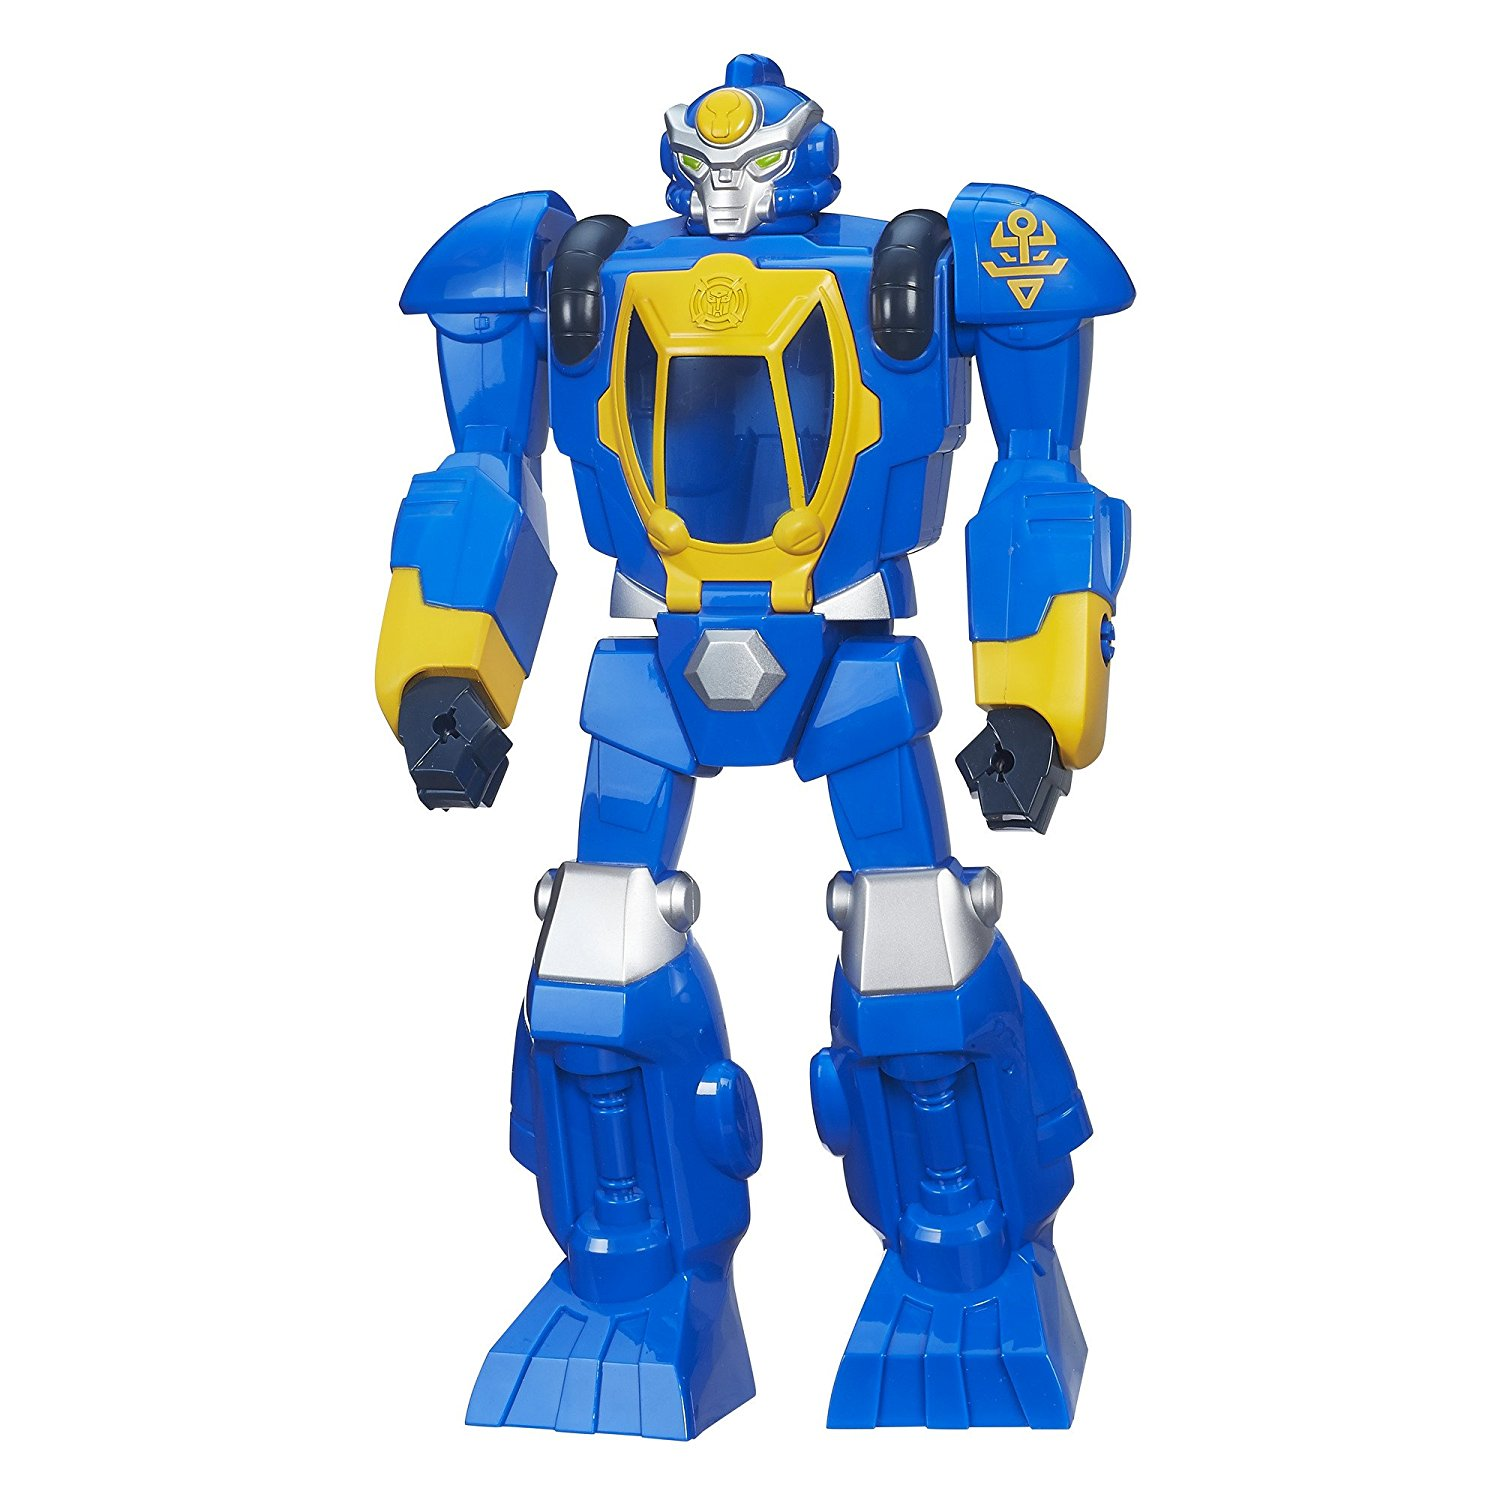 Transformers Rescue Bots High Tide Figure..., By Playskool Ship from US by